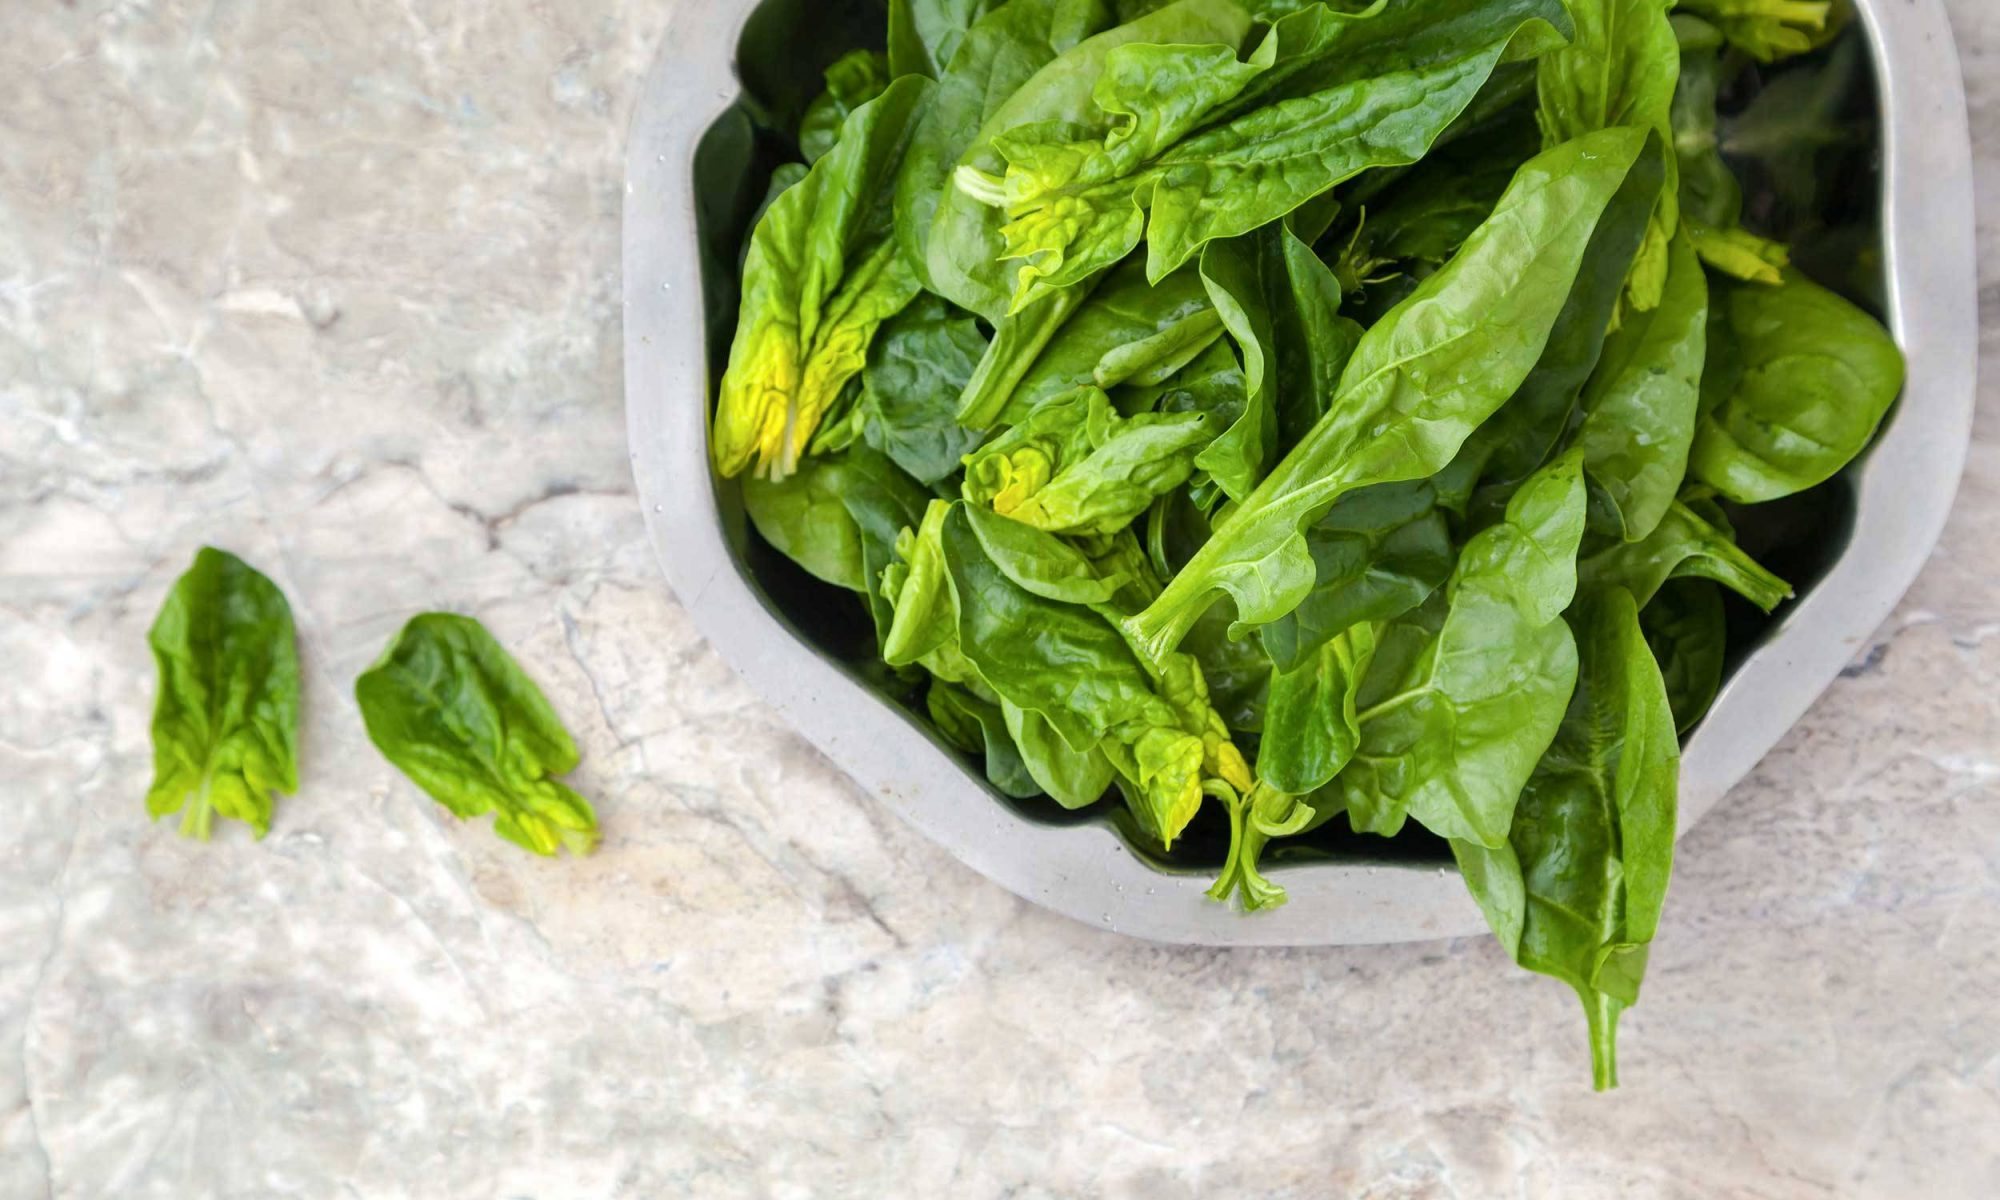 How to Store Spinach So It Doesn't Get Slimy